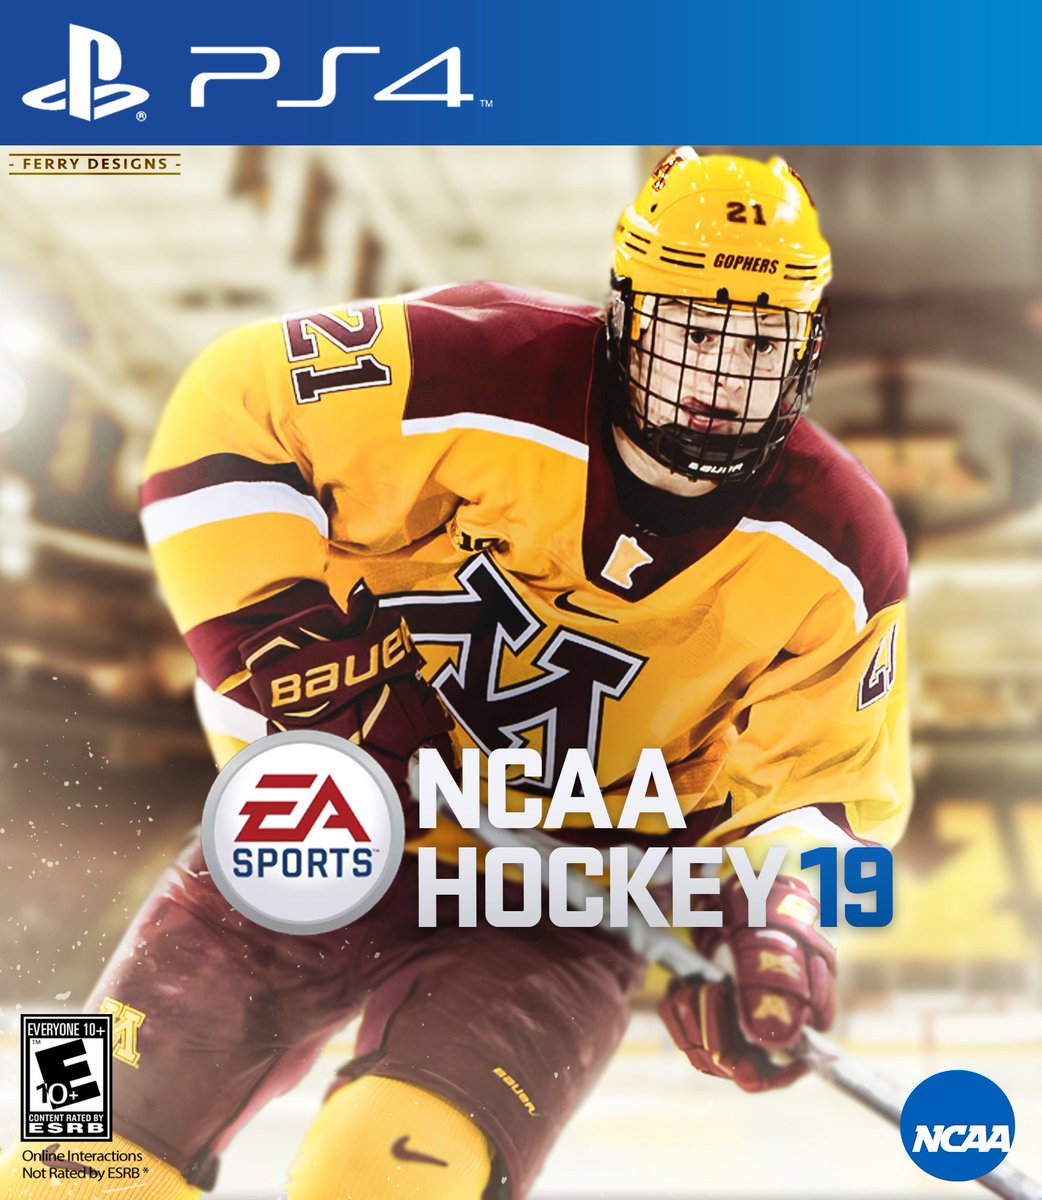 Ferry On Twitter Ncaa Video Games Need To Come Back Why Not Start